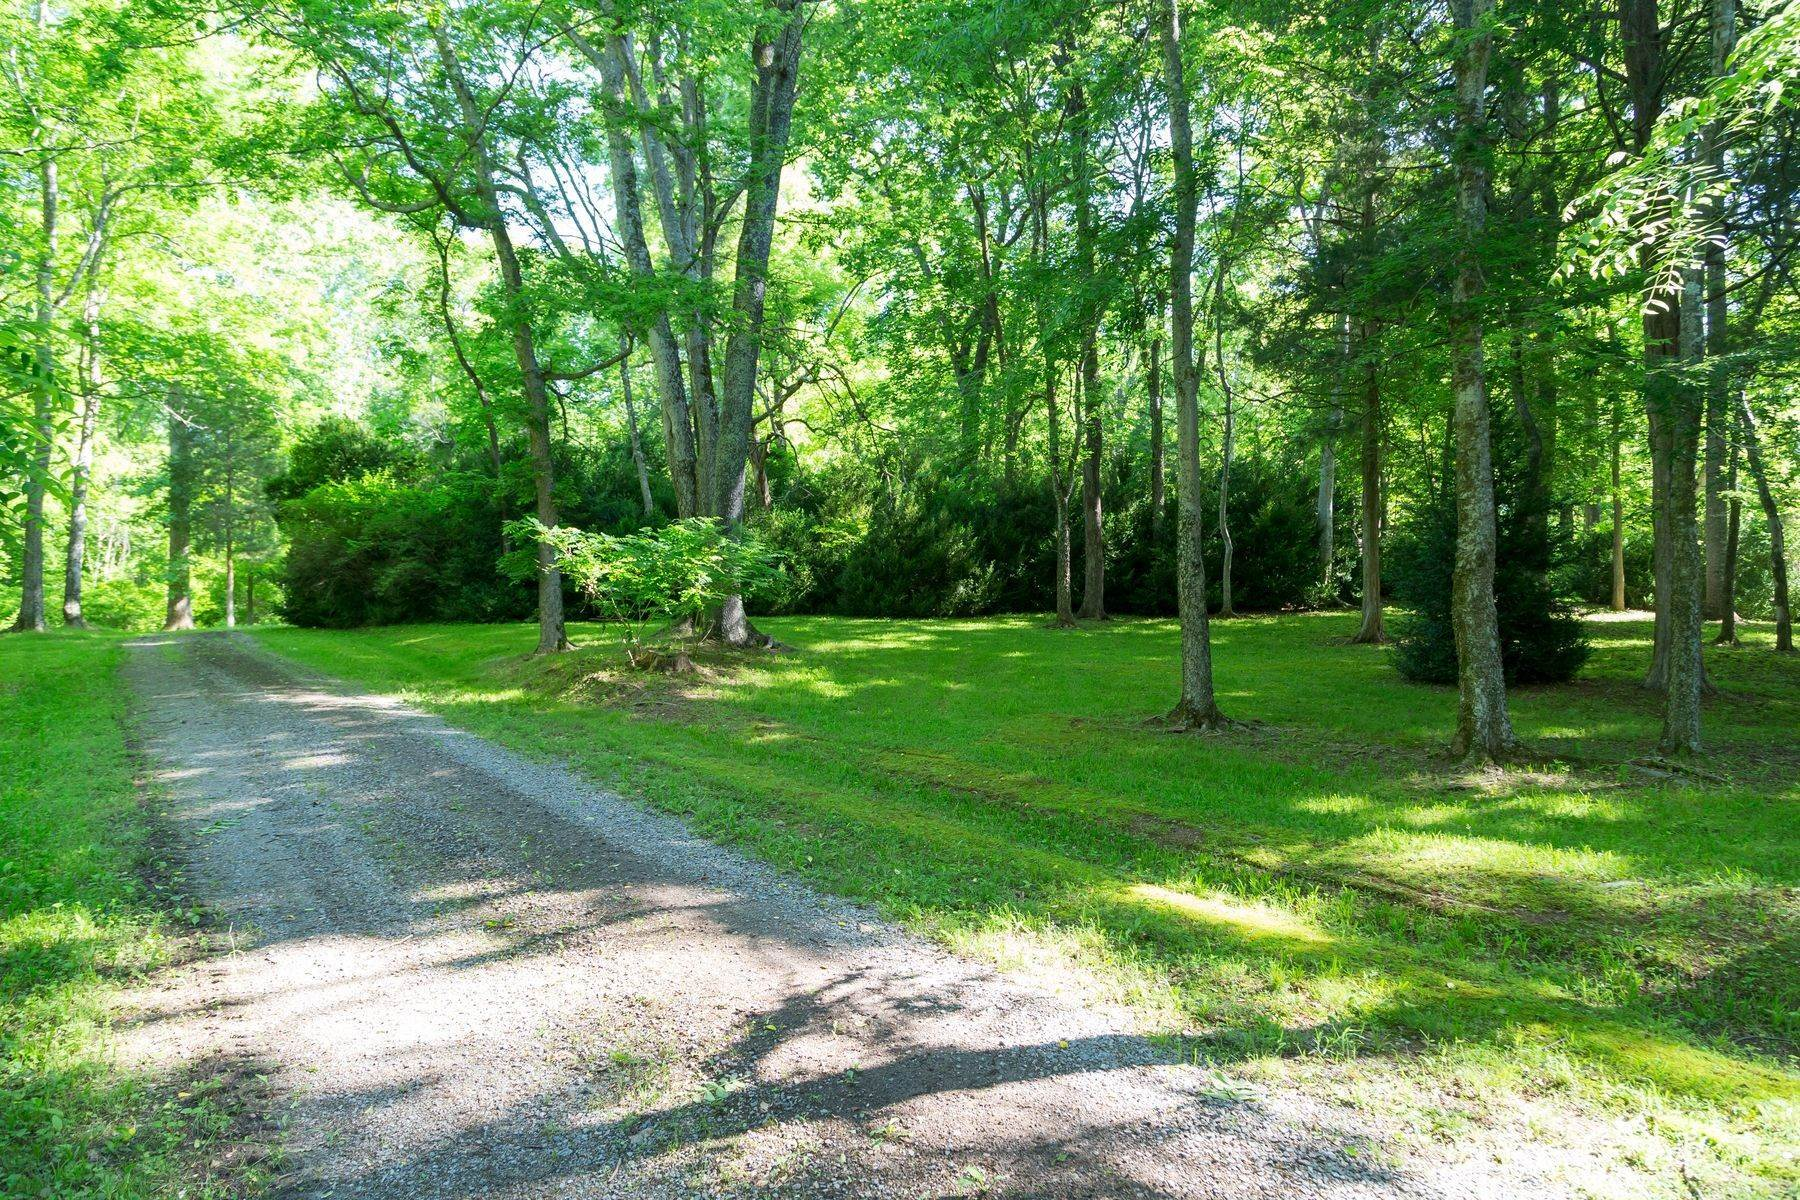 2. Property for Sale at Gardner Farm 792 E Old Mountain Rd Mineral, Virginia 23117 United States